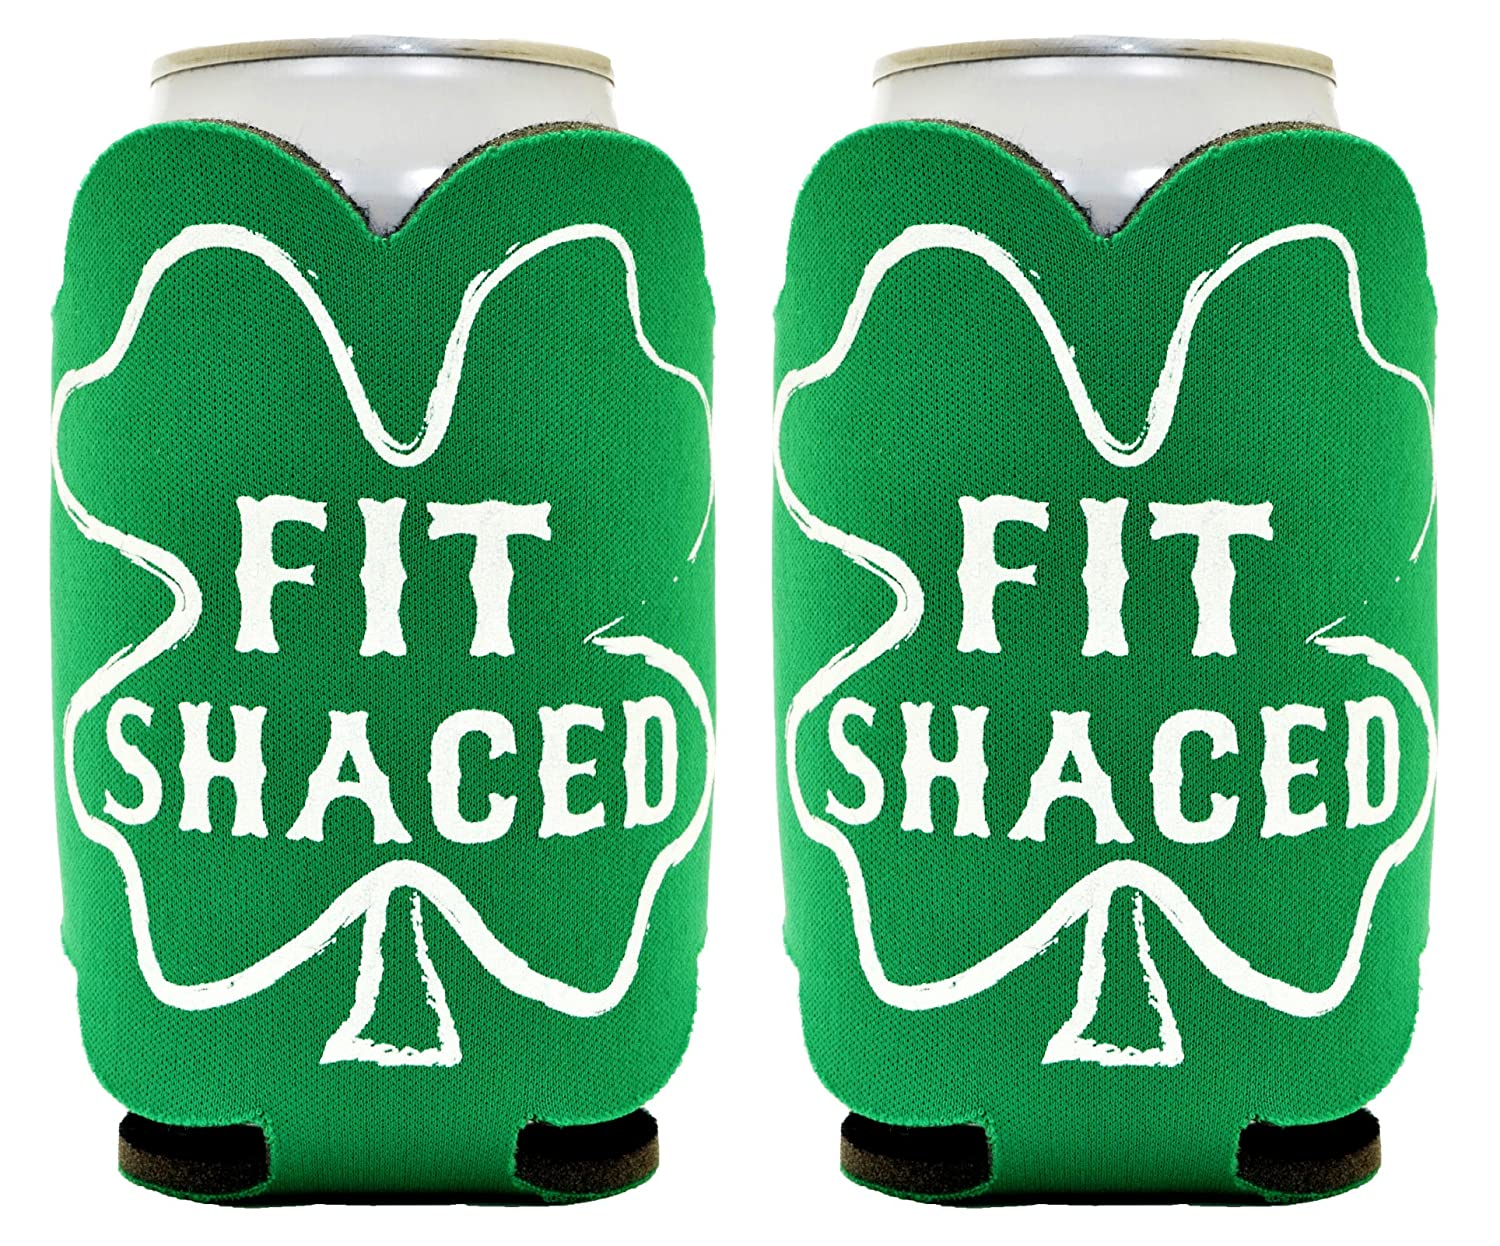 Patricks Day Fit Shaced Party 2 Pack Can Coolies Drink Coolers Kelly Green Funny Beer Coolie St